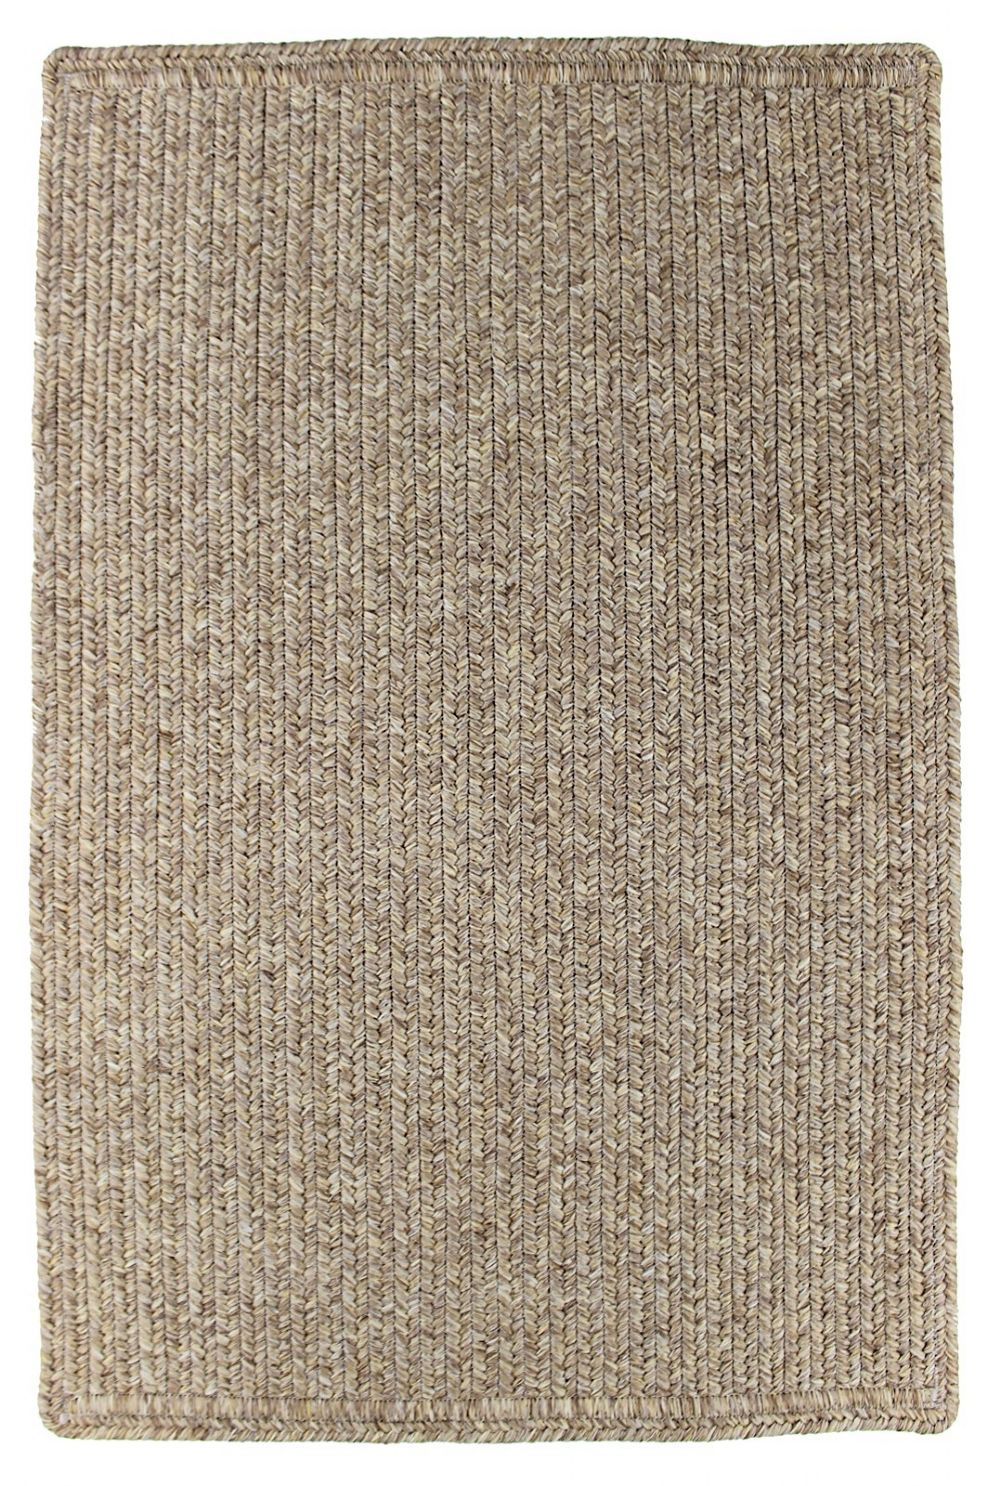 homespice decor sepia braided area rug collection